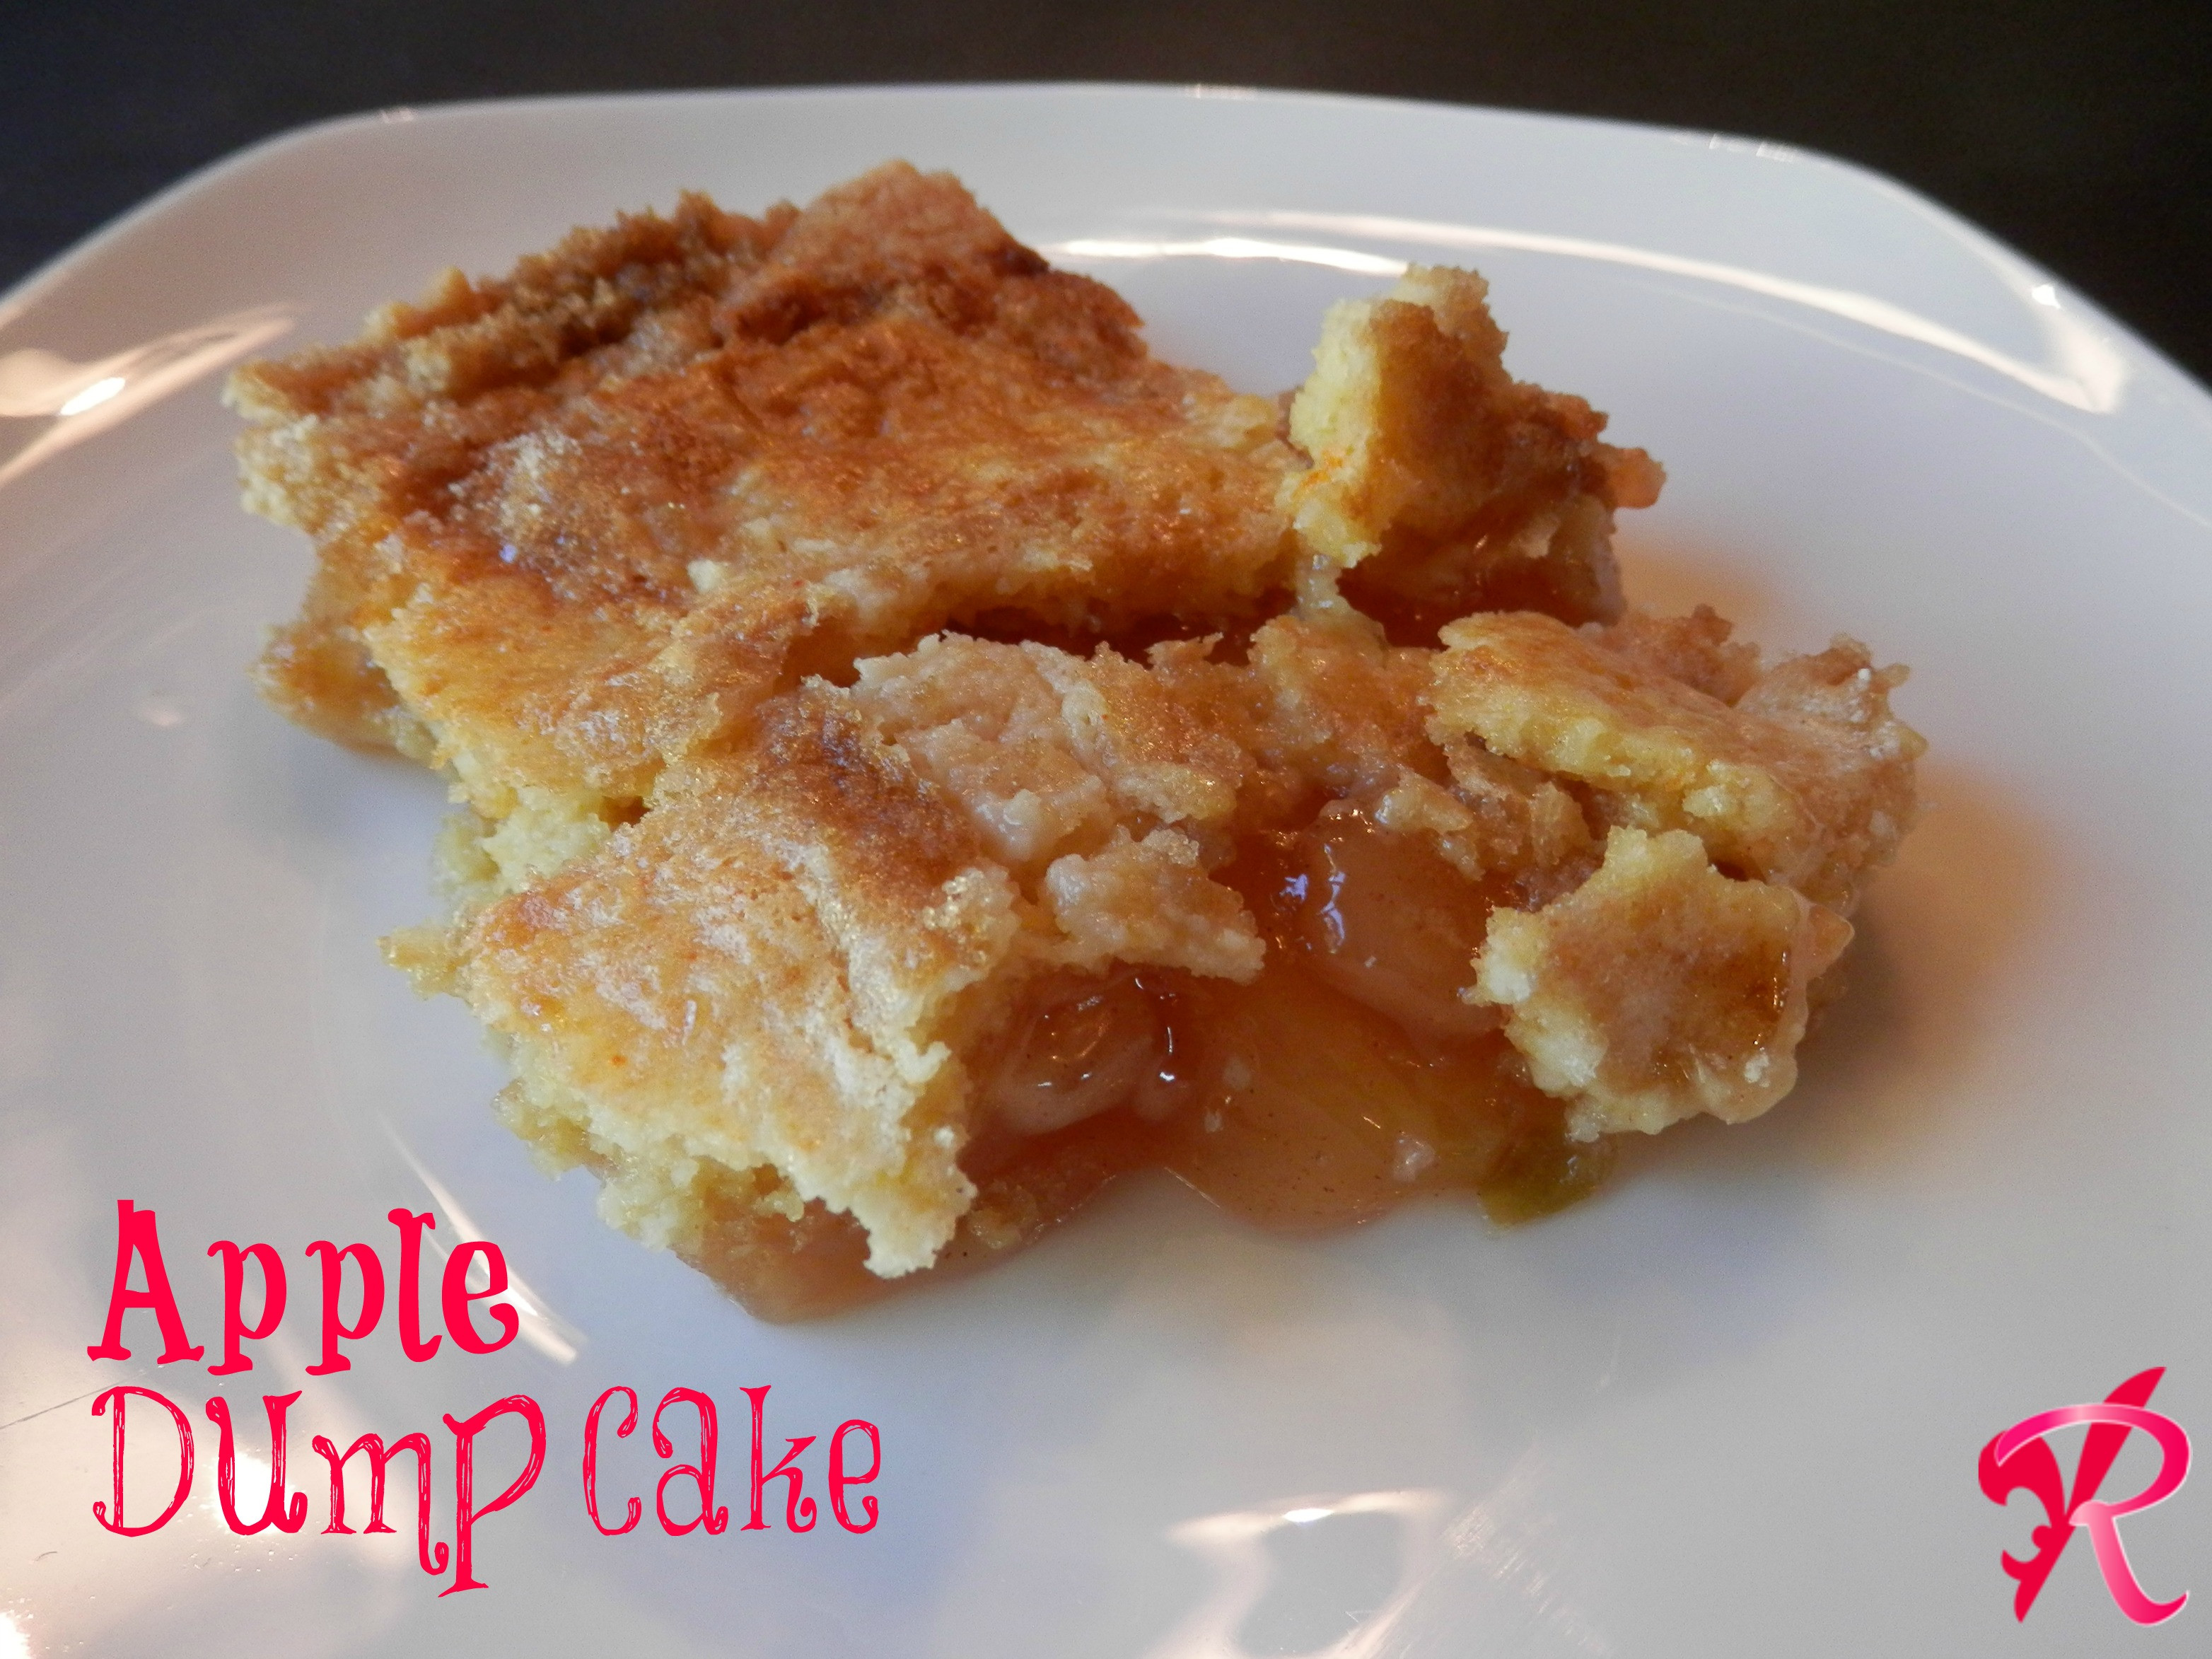 Apple Pie Filling Dump Cake  APPLE DUMP CAKE AND Tim Hortons Can of Hot Chocolate 500g